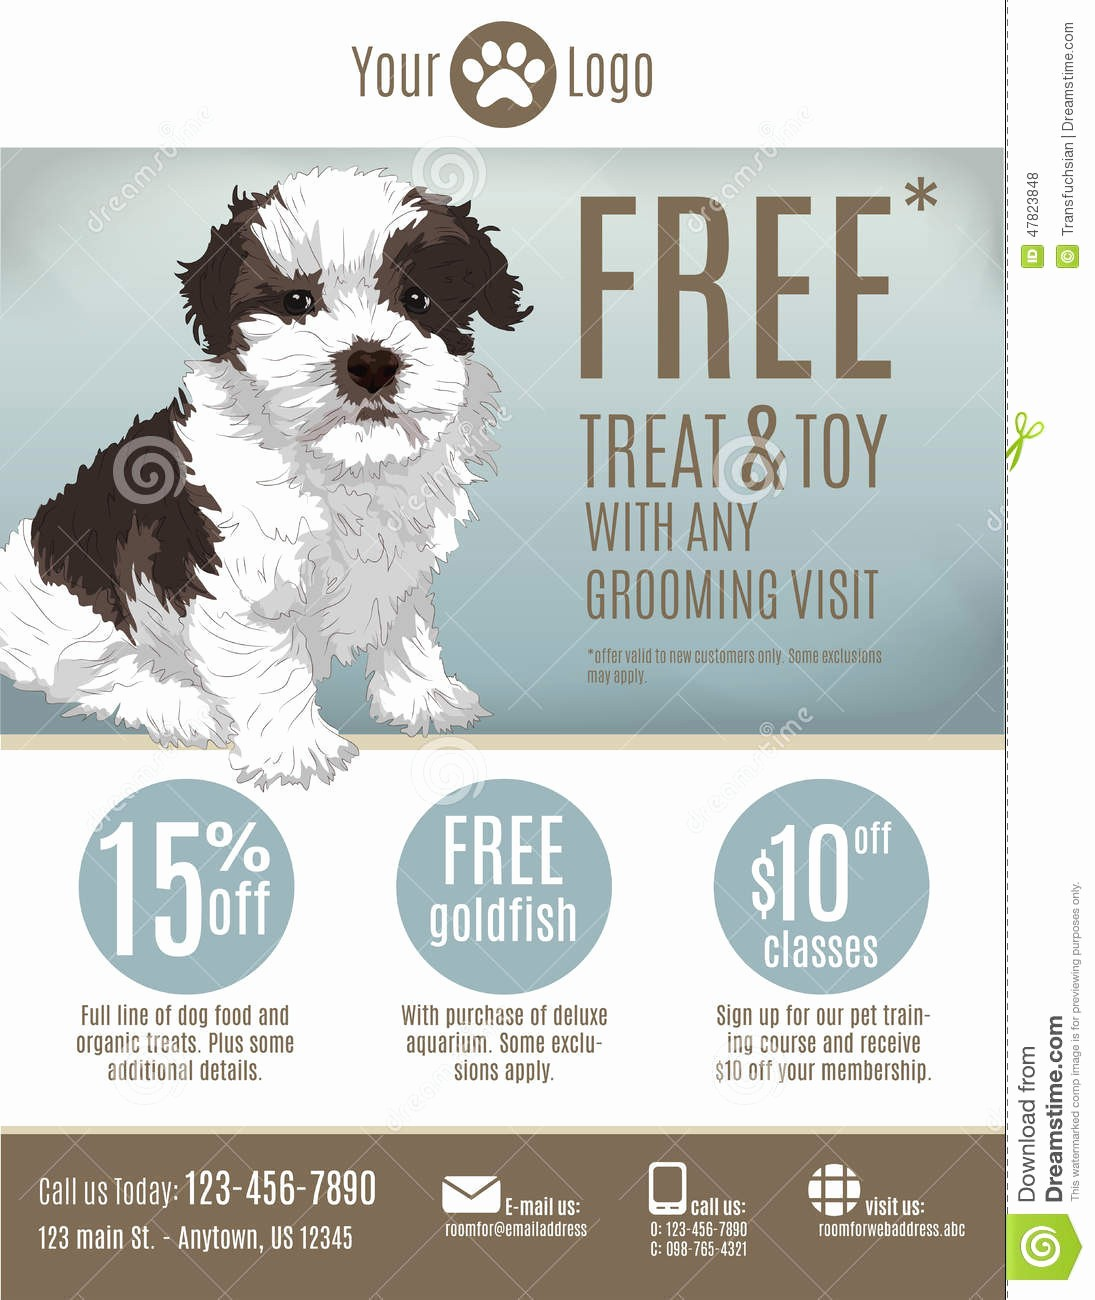 Puppy for Sale Flyer Templates New Puppy for Sale Flyer Templates Yourweek 793c47eca25e